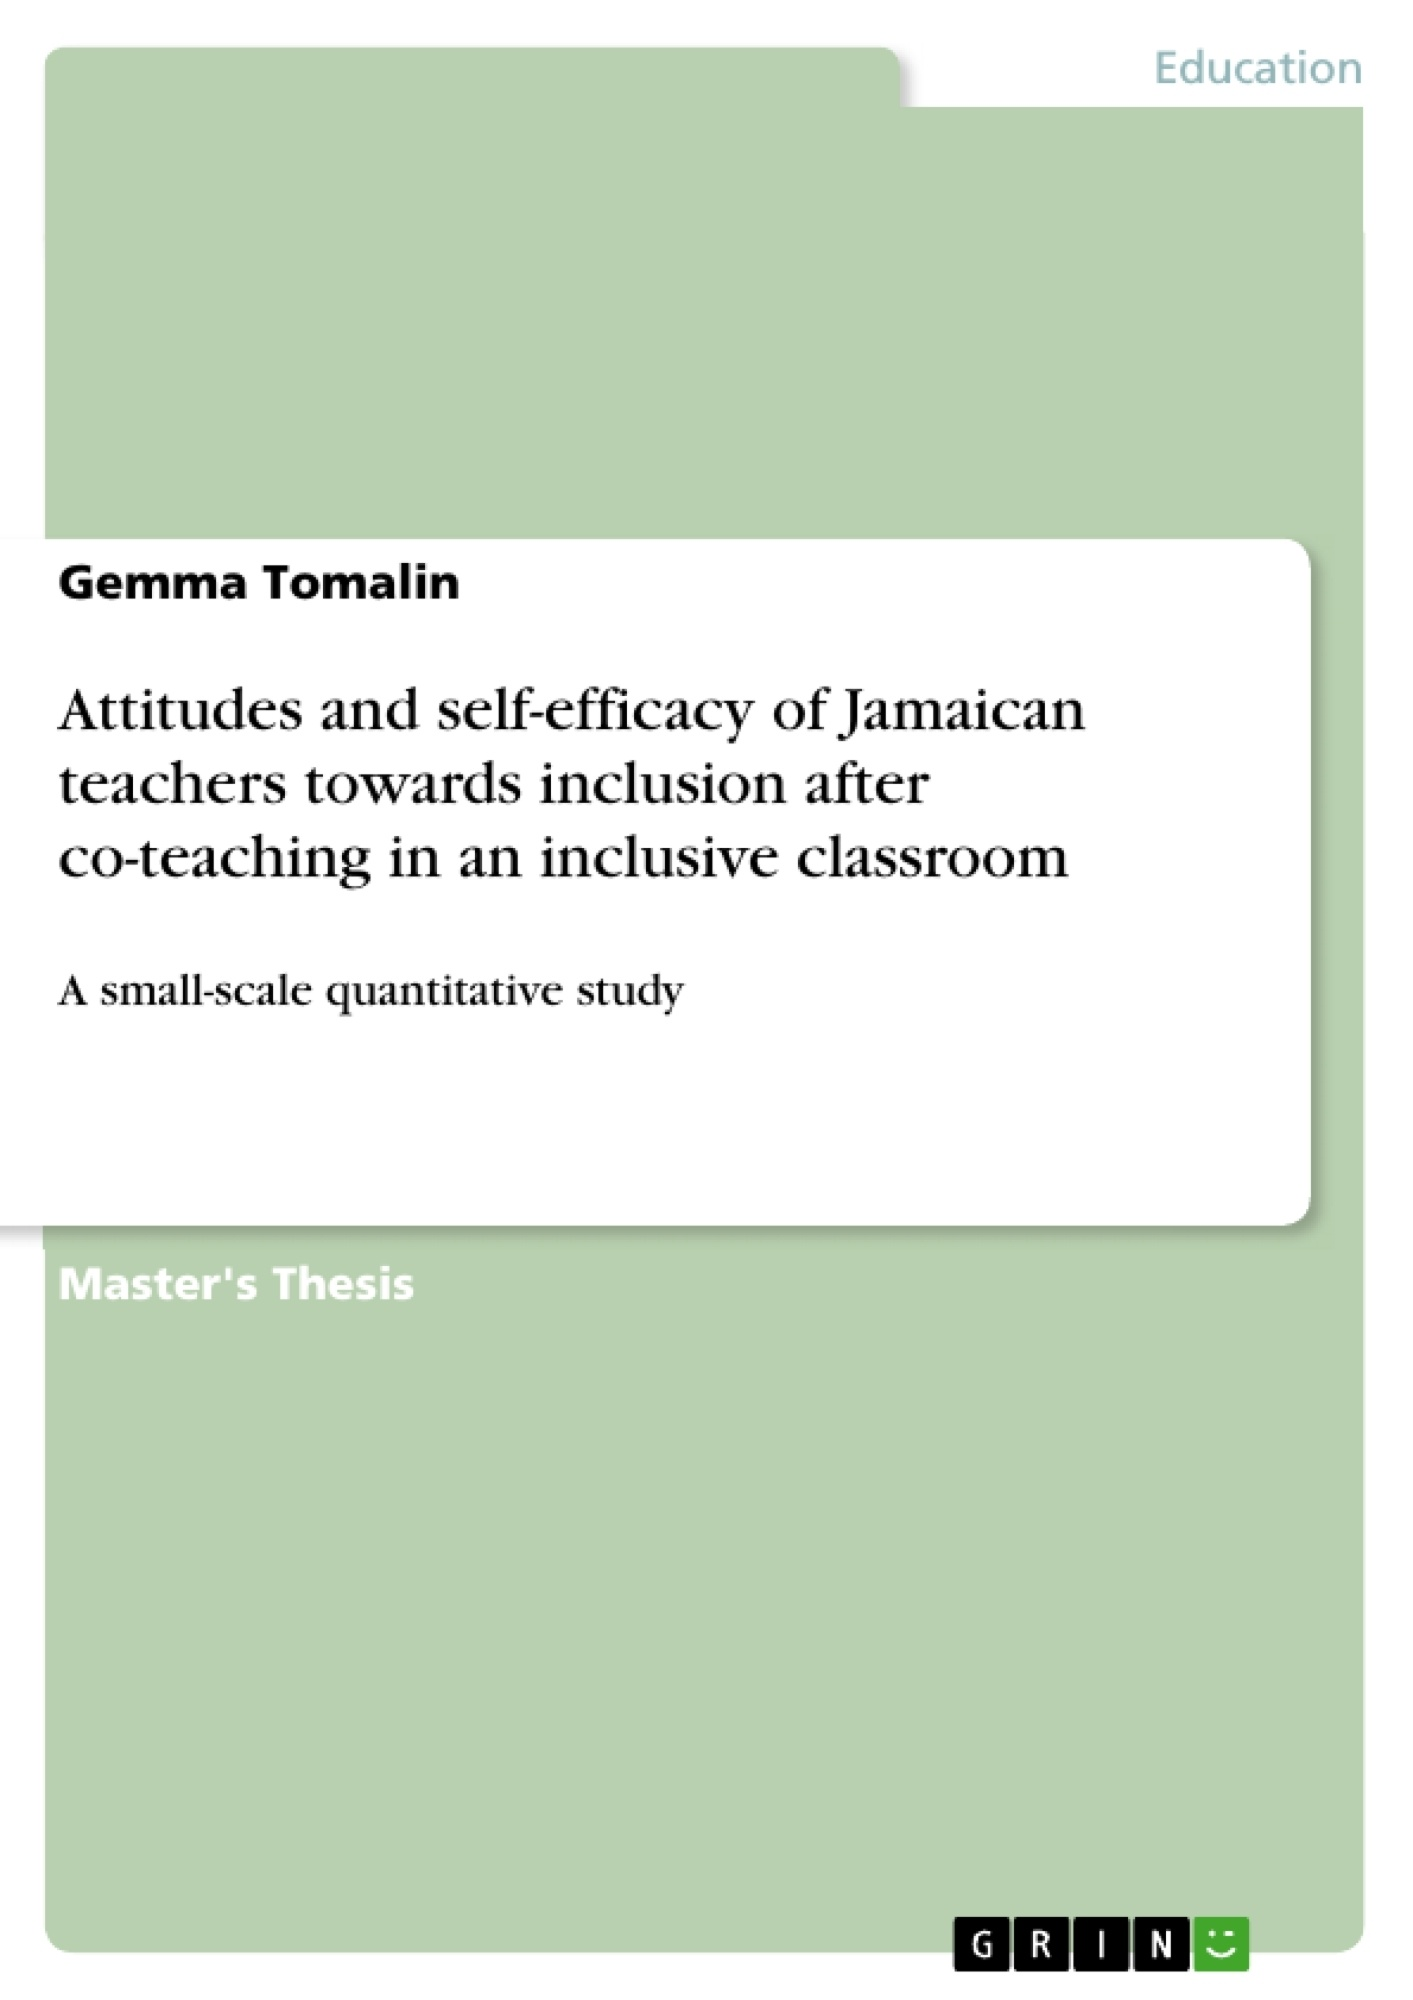 Title: Attitudes and self-efficacy of Jamaican teachers towards inclusion after co-teaching in an inclusive classroom